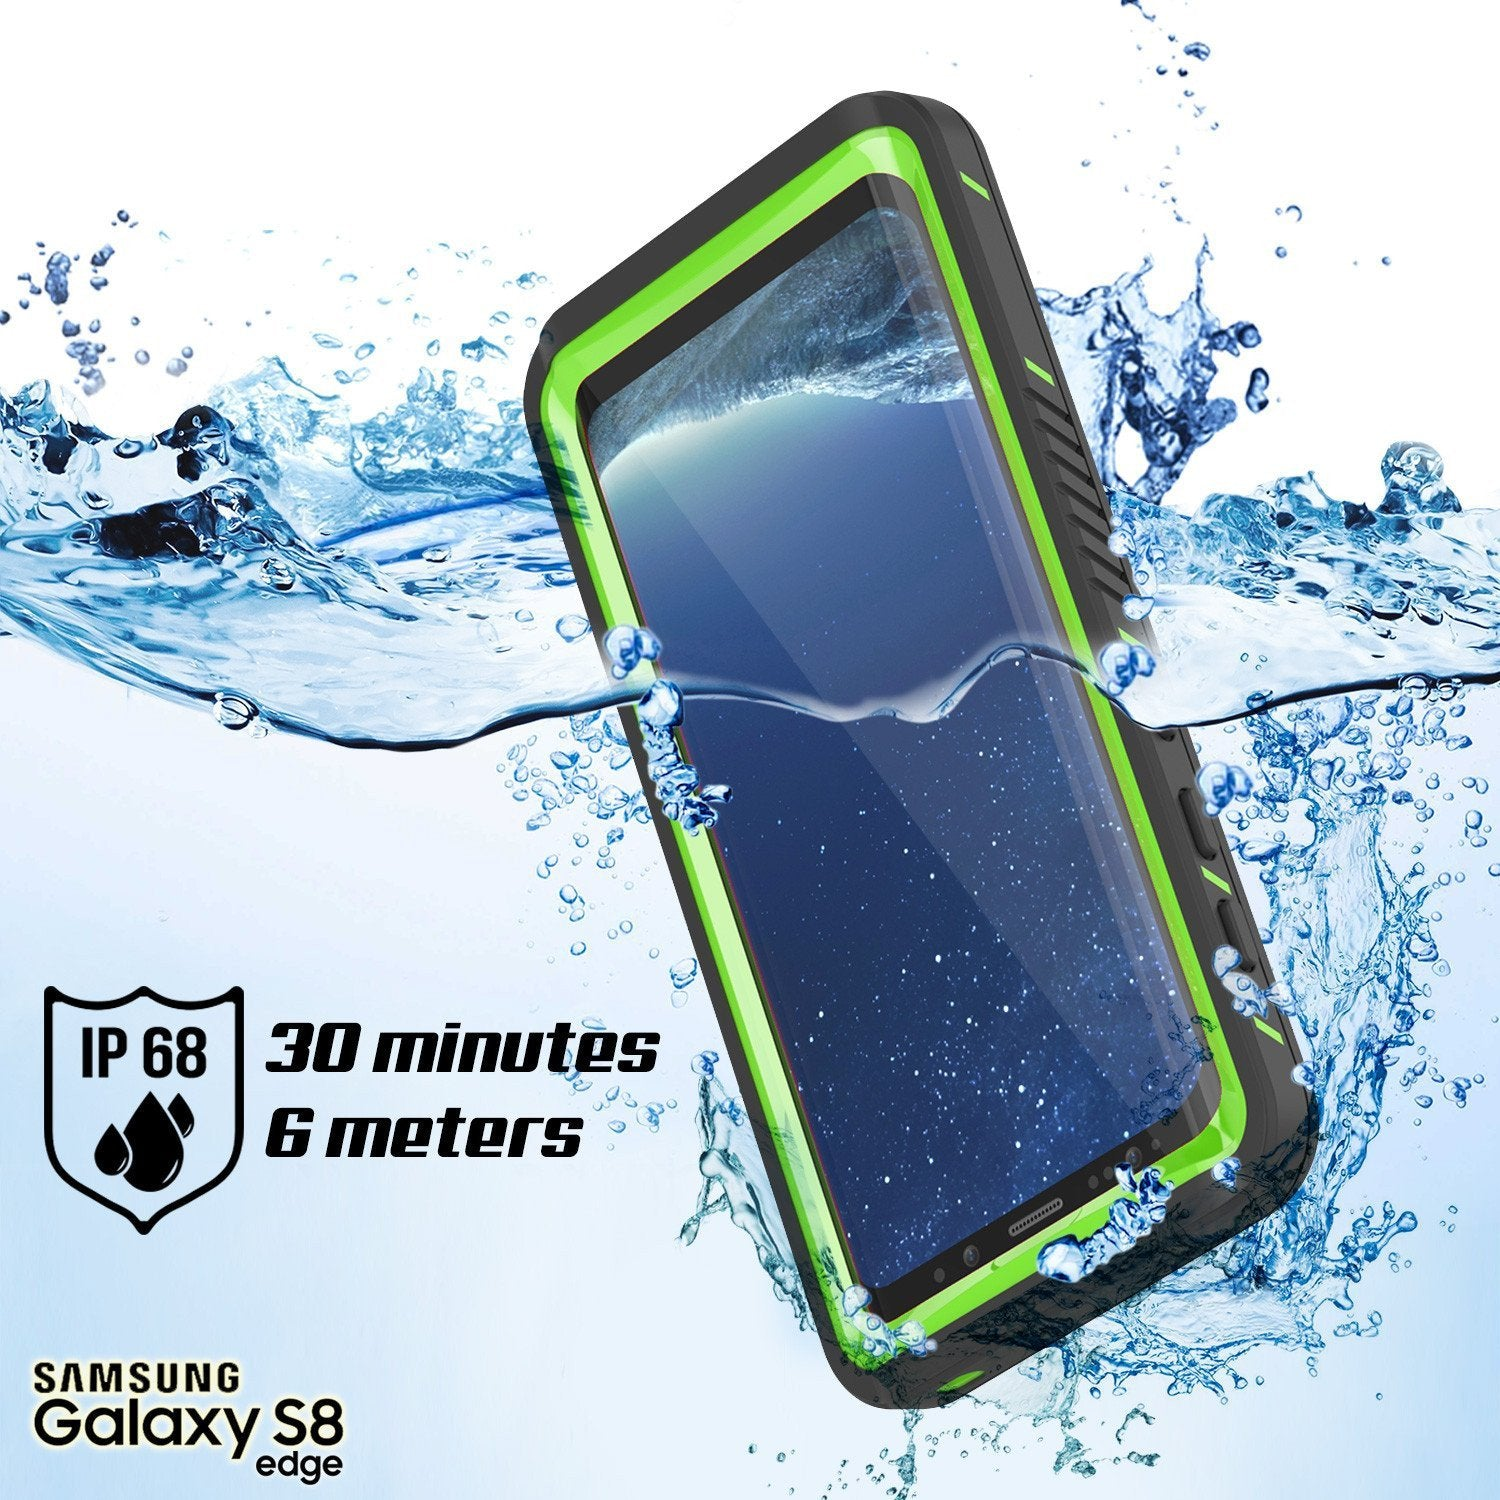 Galaxy S8 Waterproof Case, Punkcase [Extreme Series] [Slim Fit] [IP68 Certified] [Shockproof] [Snowproof] [Dirproof] Armor Cover W/ Built In Screen Protector for Samsung Galaxy S8 [Green] - PunkCase NZ